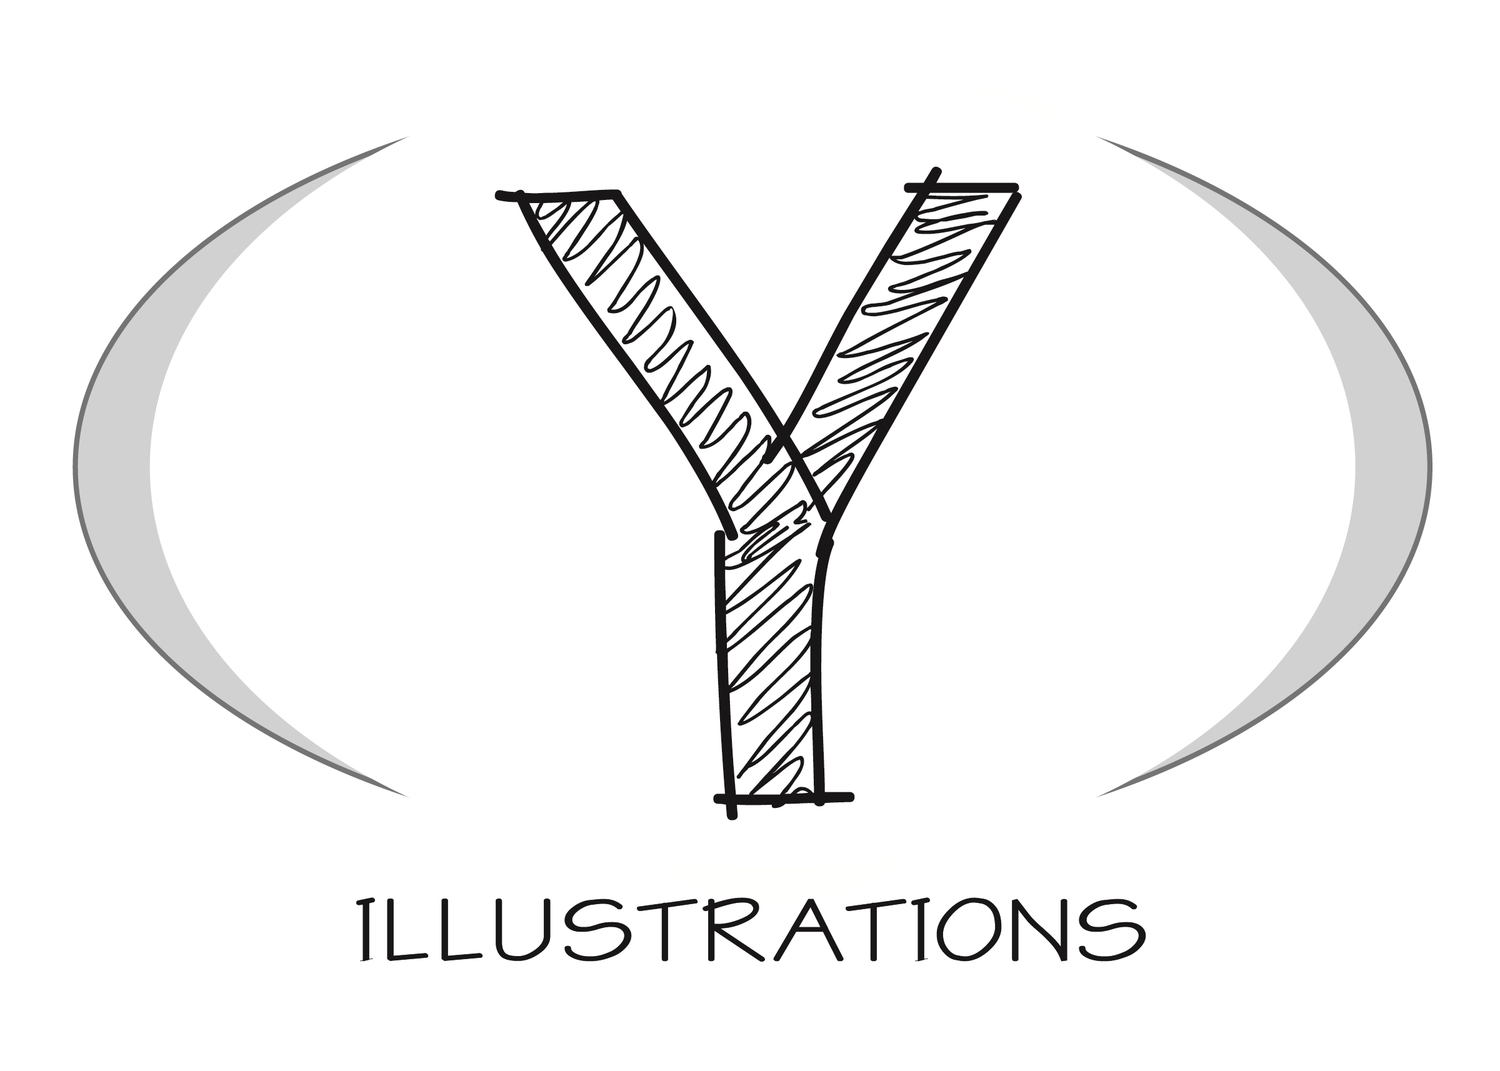 Y ILLUSTRATIONS